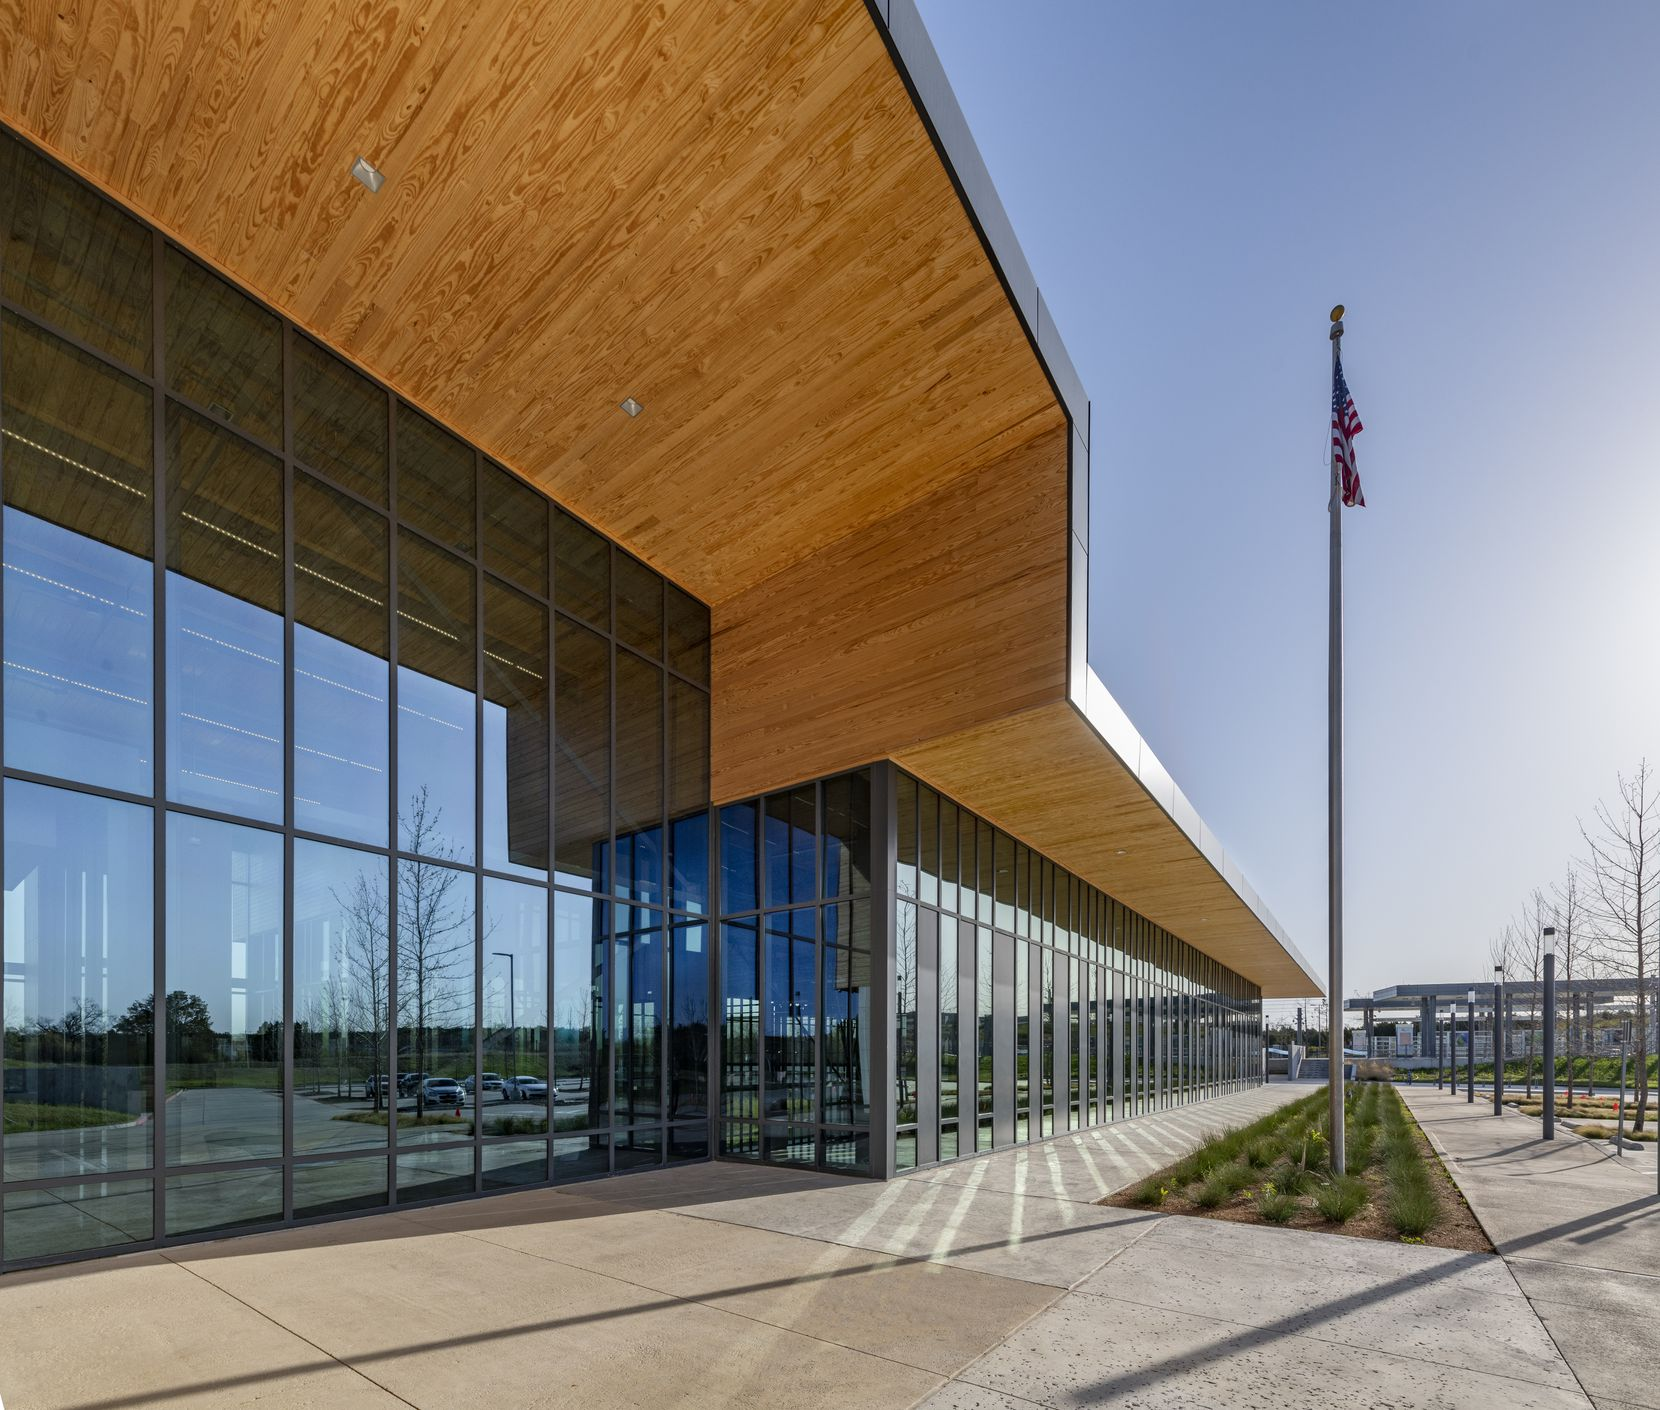 The Singing Hills Recreation Center in southern Dallas.